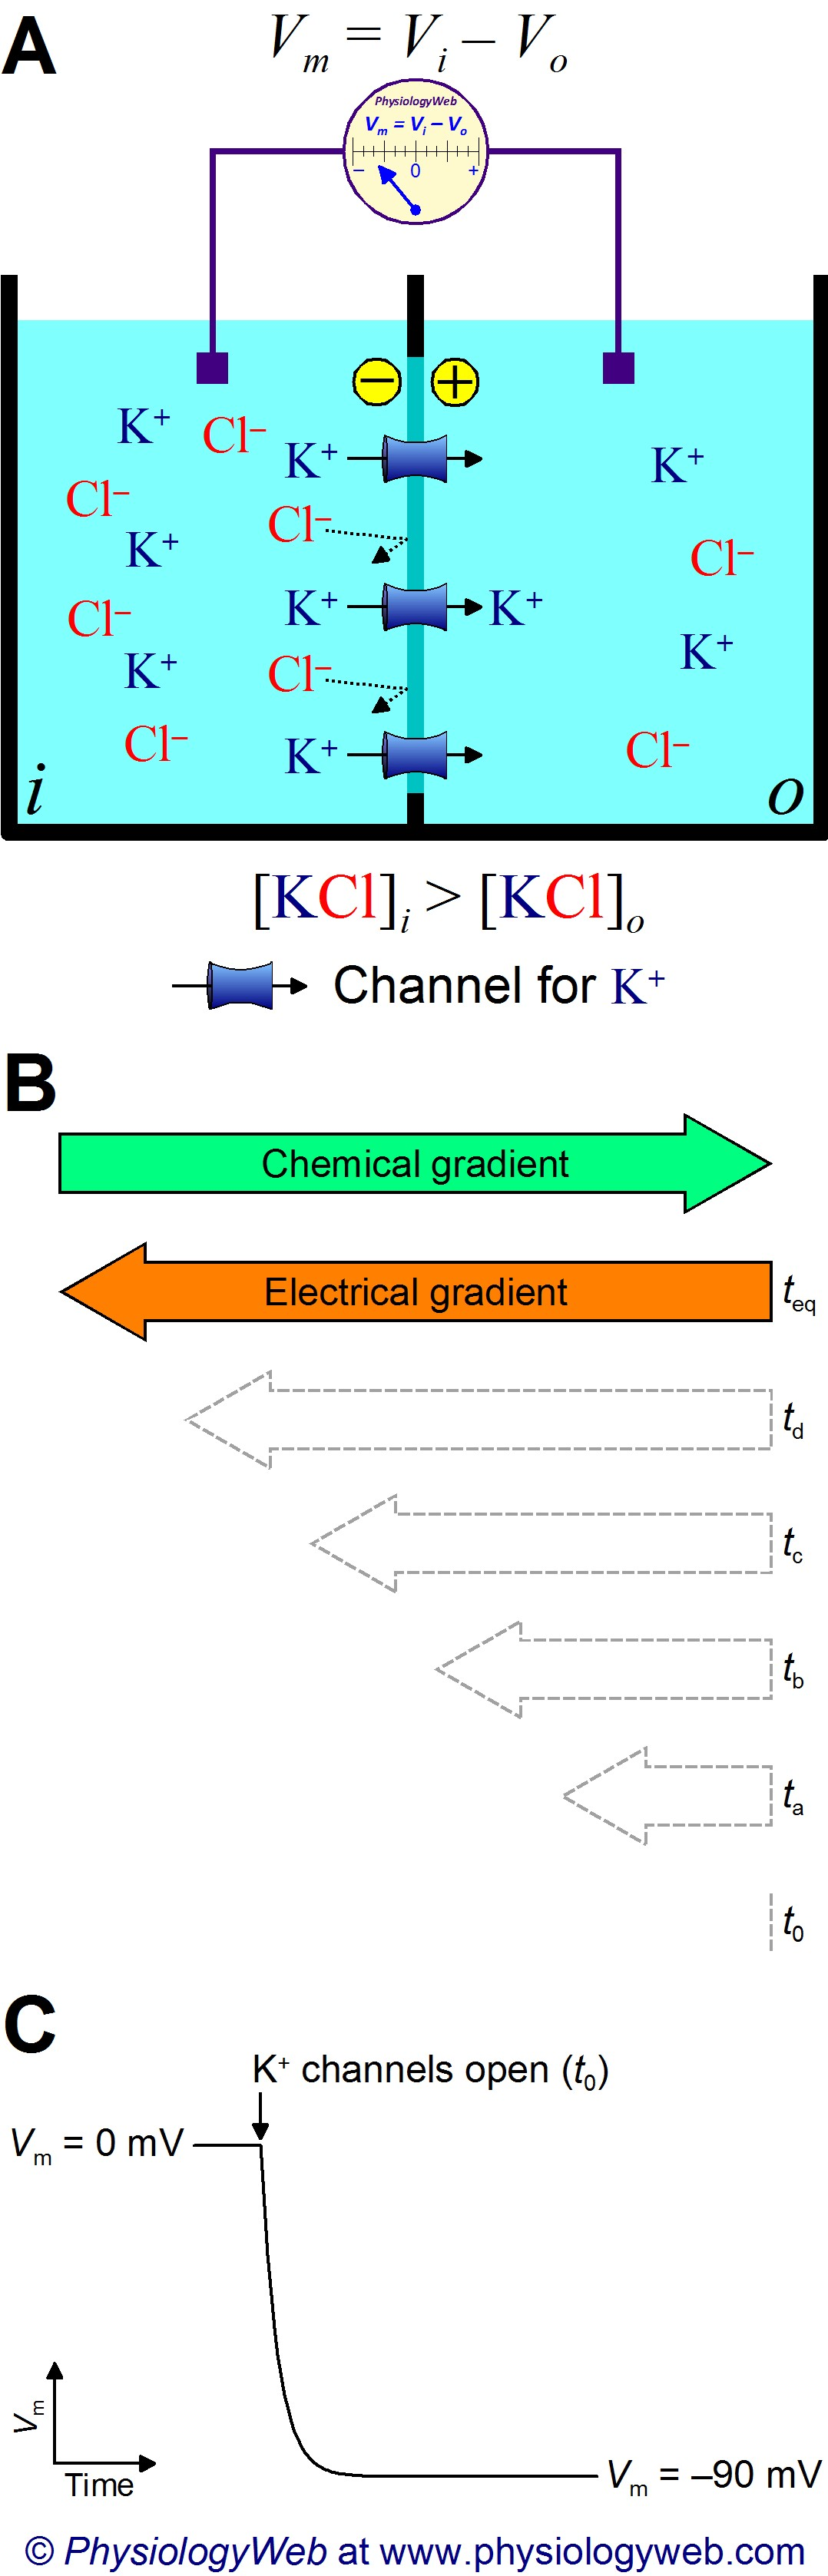 Two solution compartments separated by a membrane that contains potassium (K+) channels